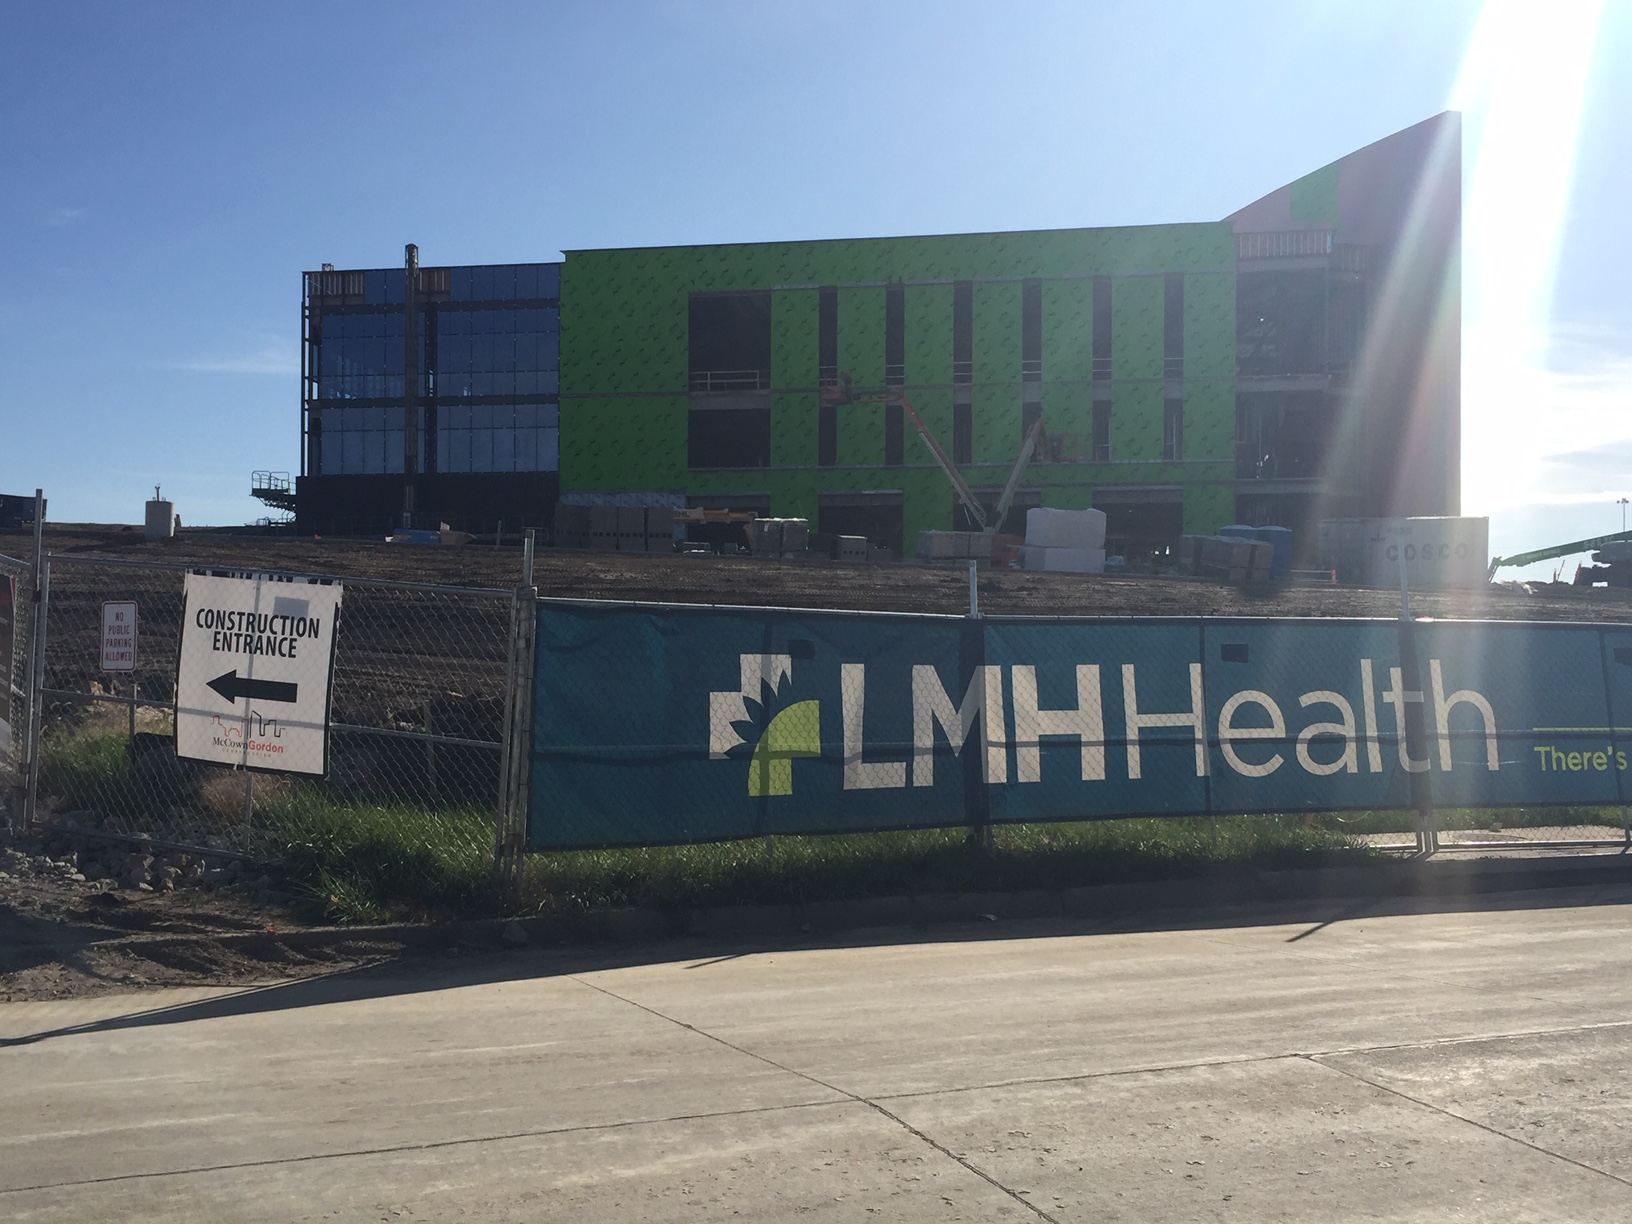 Construction continues at the LMH Health West Campus in northwest Lawrence.  Located near Rock Chalk Park, the outpatient facility is part of the hospital's $100 million expansion plan.  (Photo by J. Schafer)